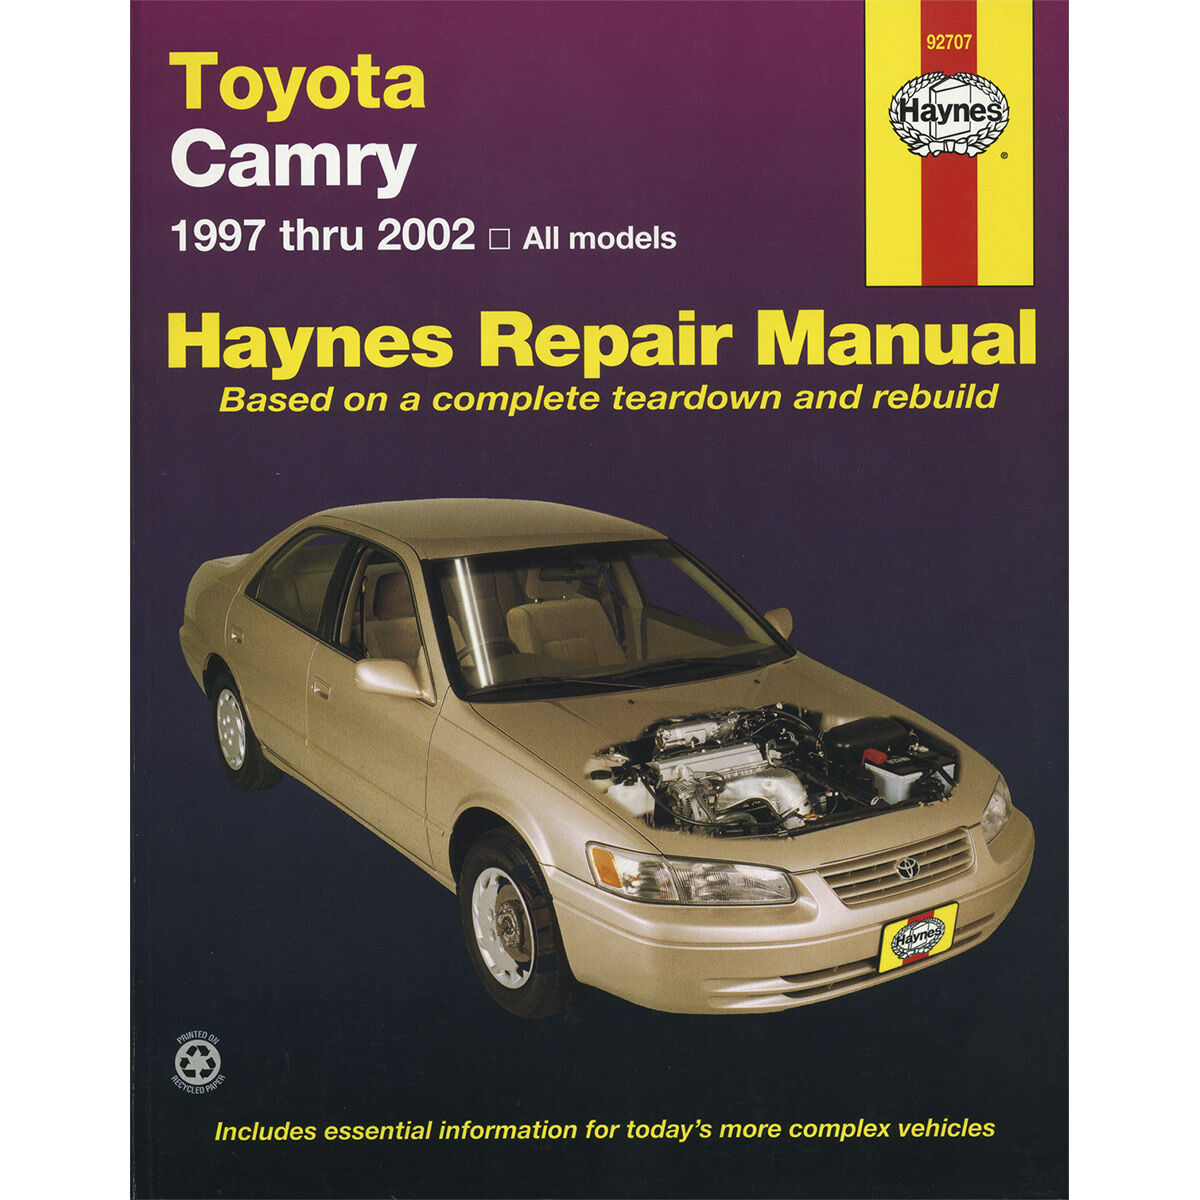 haynes car manual for toyota camry 1997 2002 92707 supercheap rh  supercheapauto co nz toyota camry 1997 service manual ...